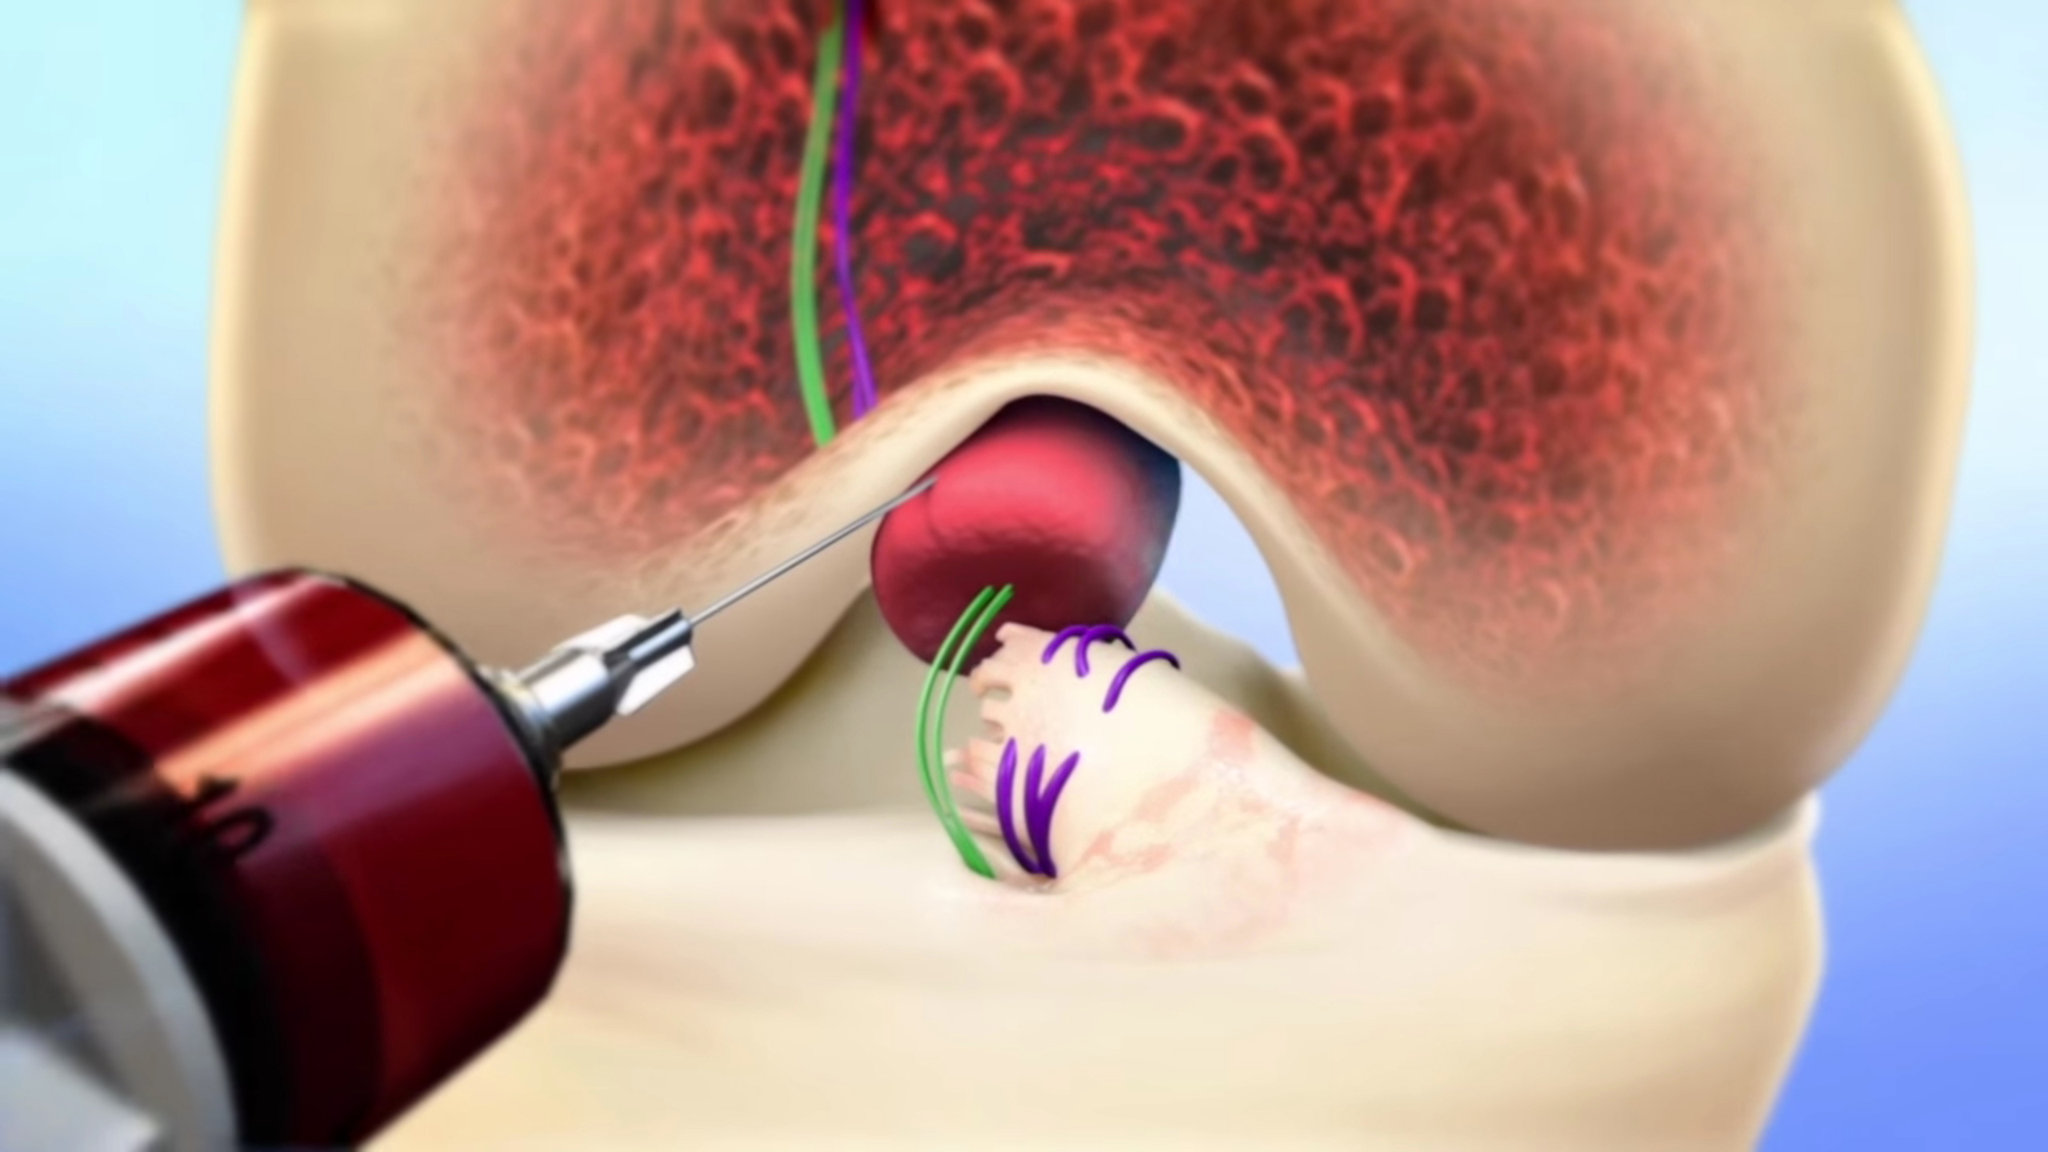 A patient's blood is injected into a sponge-like bridge that will help both ends of the torn ACL reconnect and heal in a procedure surgeons recently completed